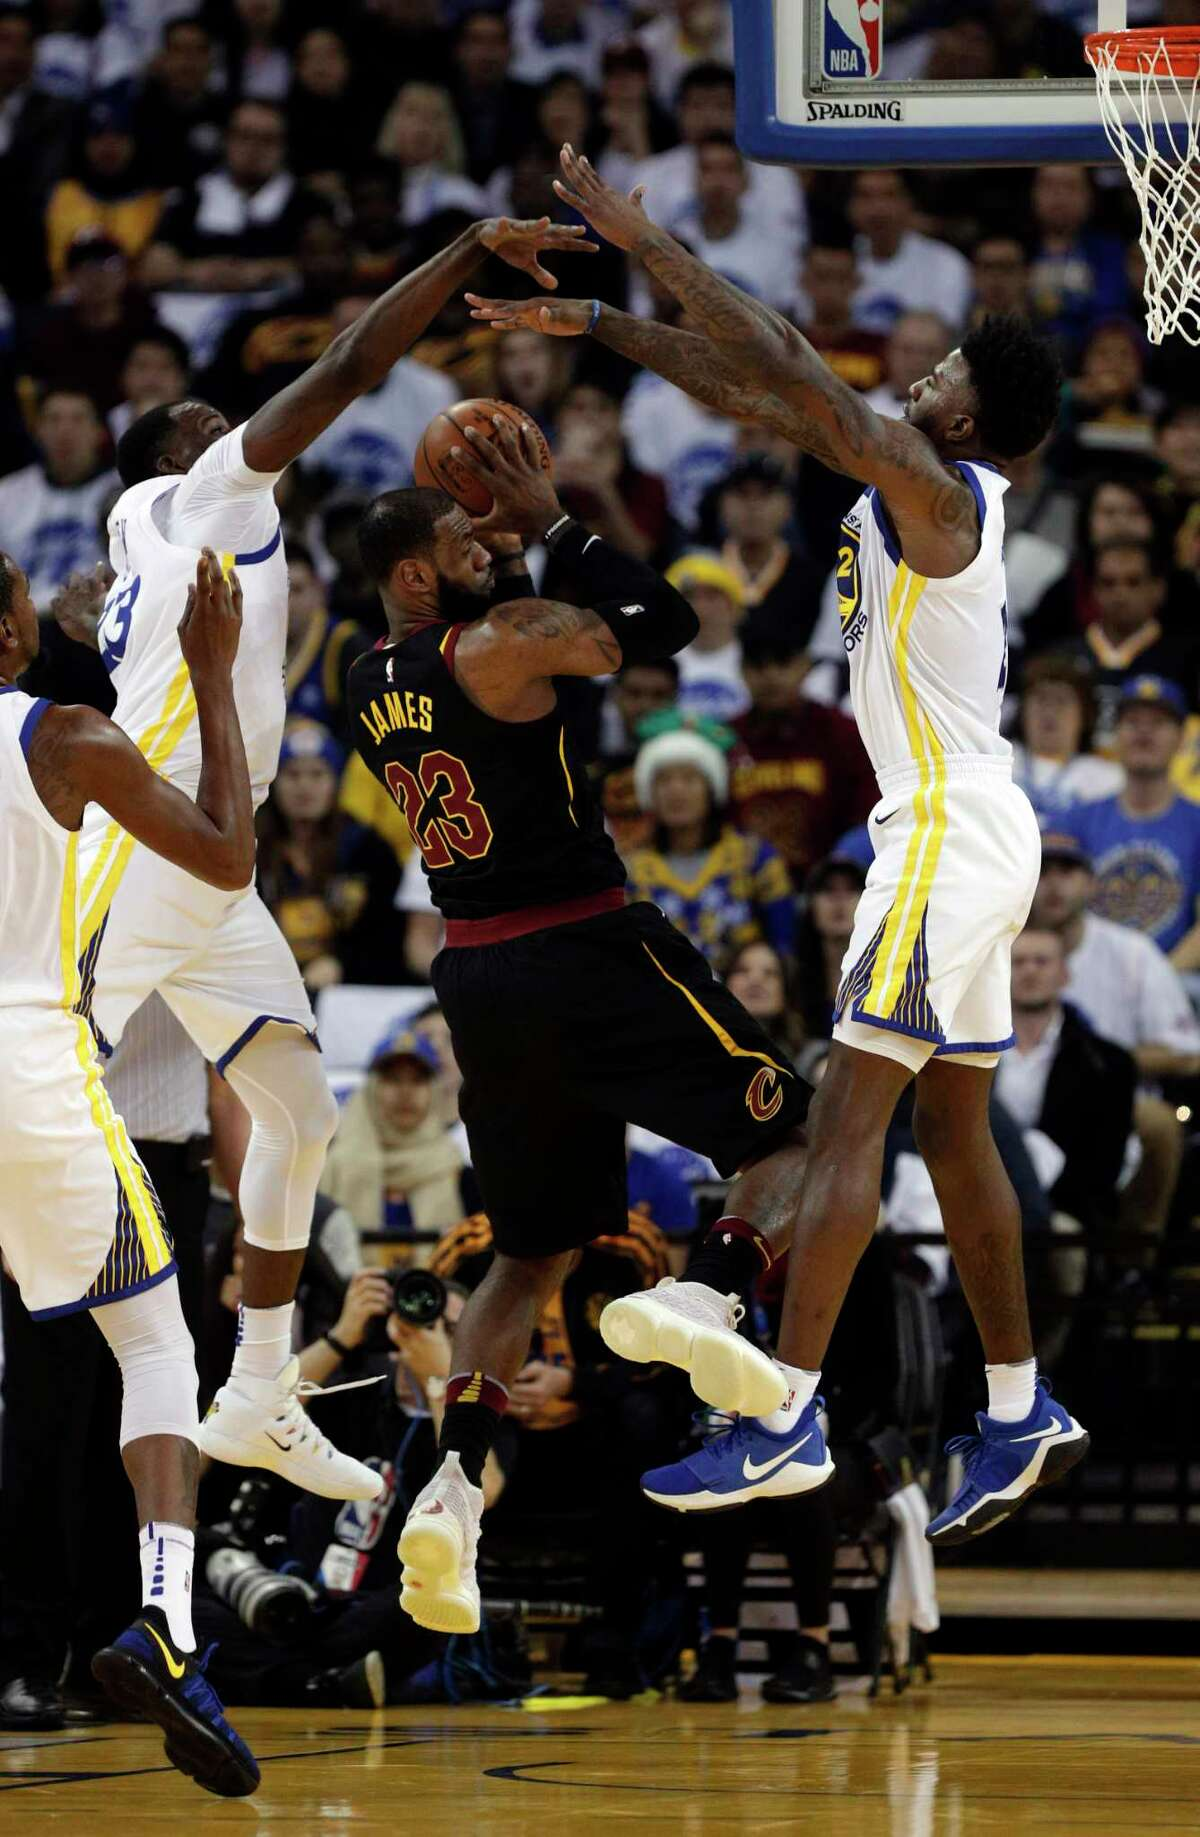 The Warriors' Draymond Green, left, and Jordan Bell put the squeeze on the Cavaliers' LeBron James.